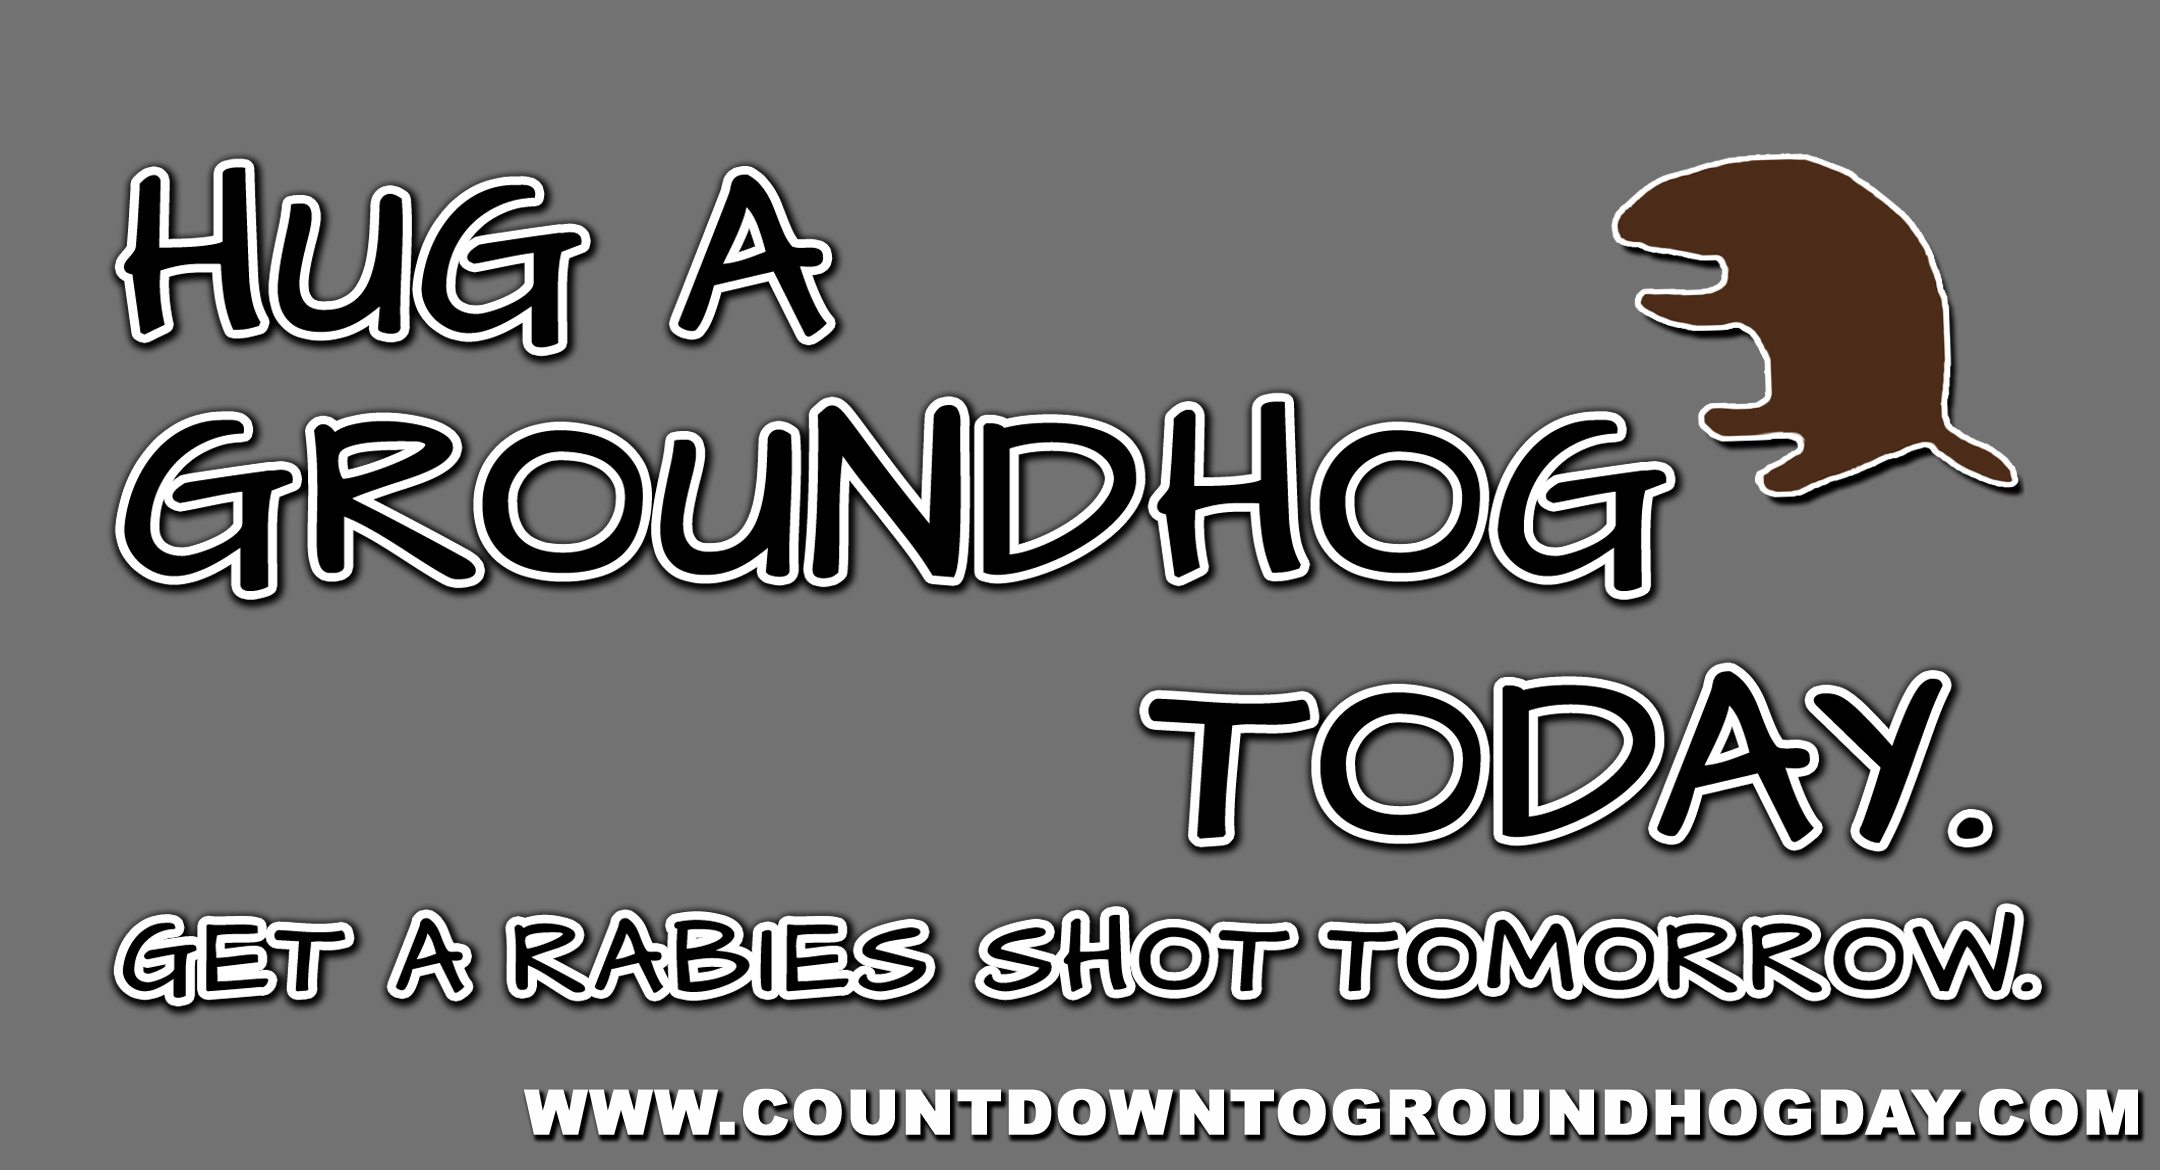 Hug a Groundhog today